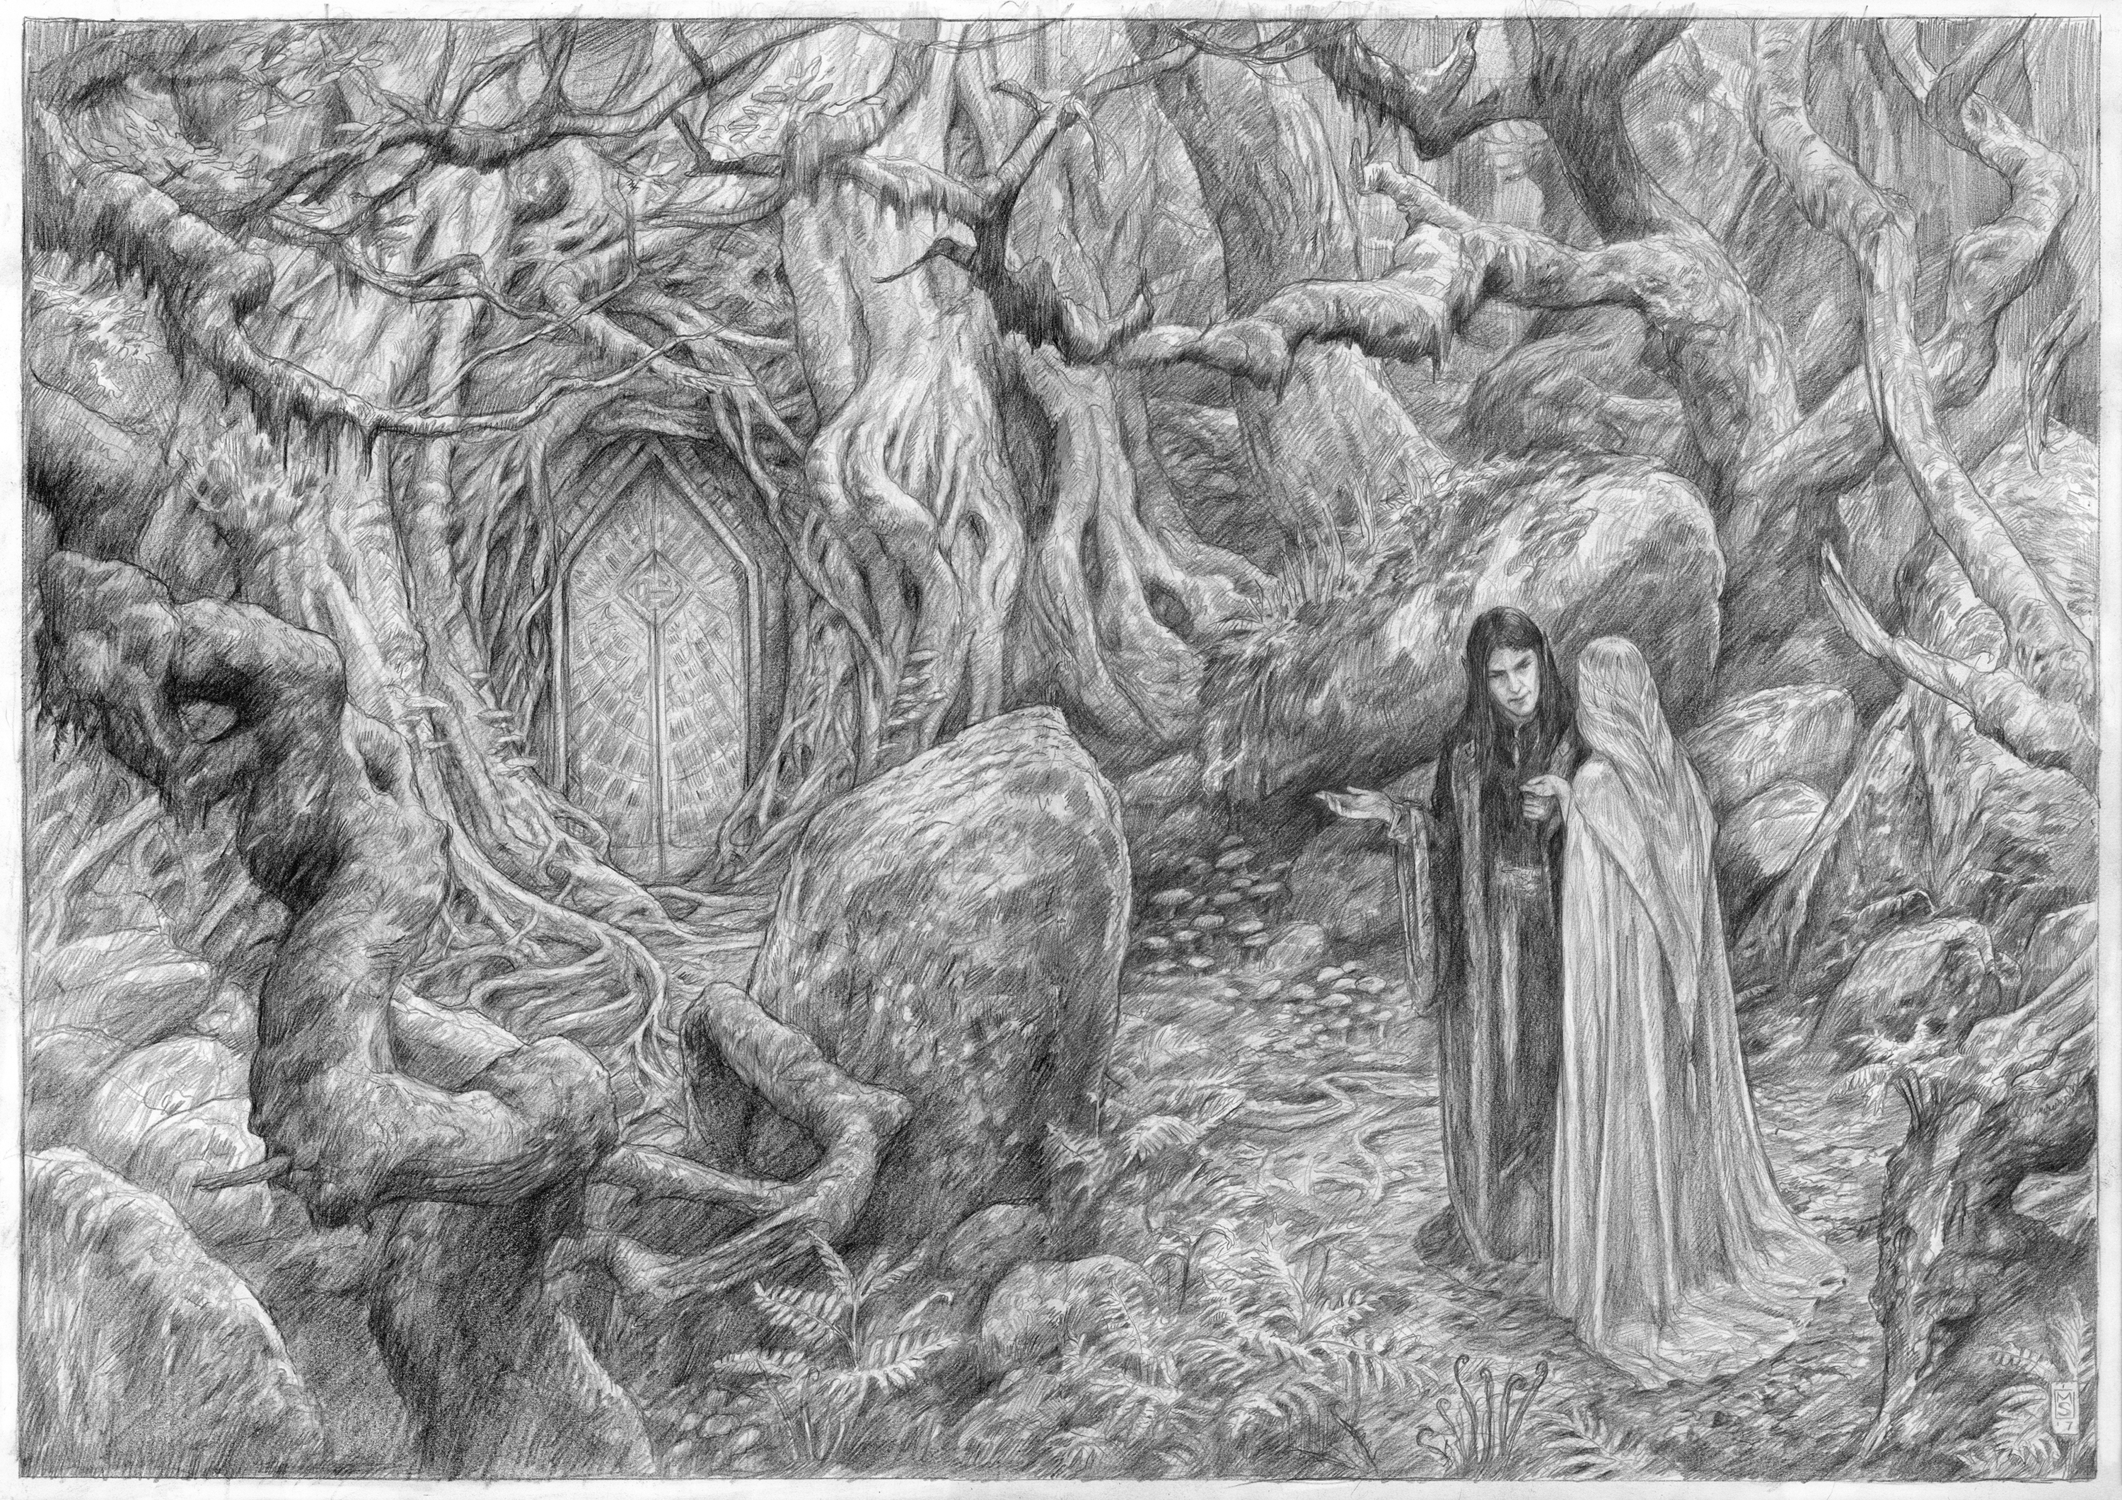 The Meeting of Aredhel and Eol Artwork by Matthew Stewart